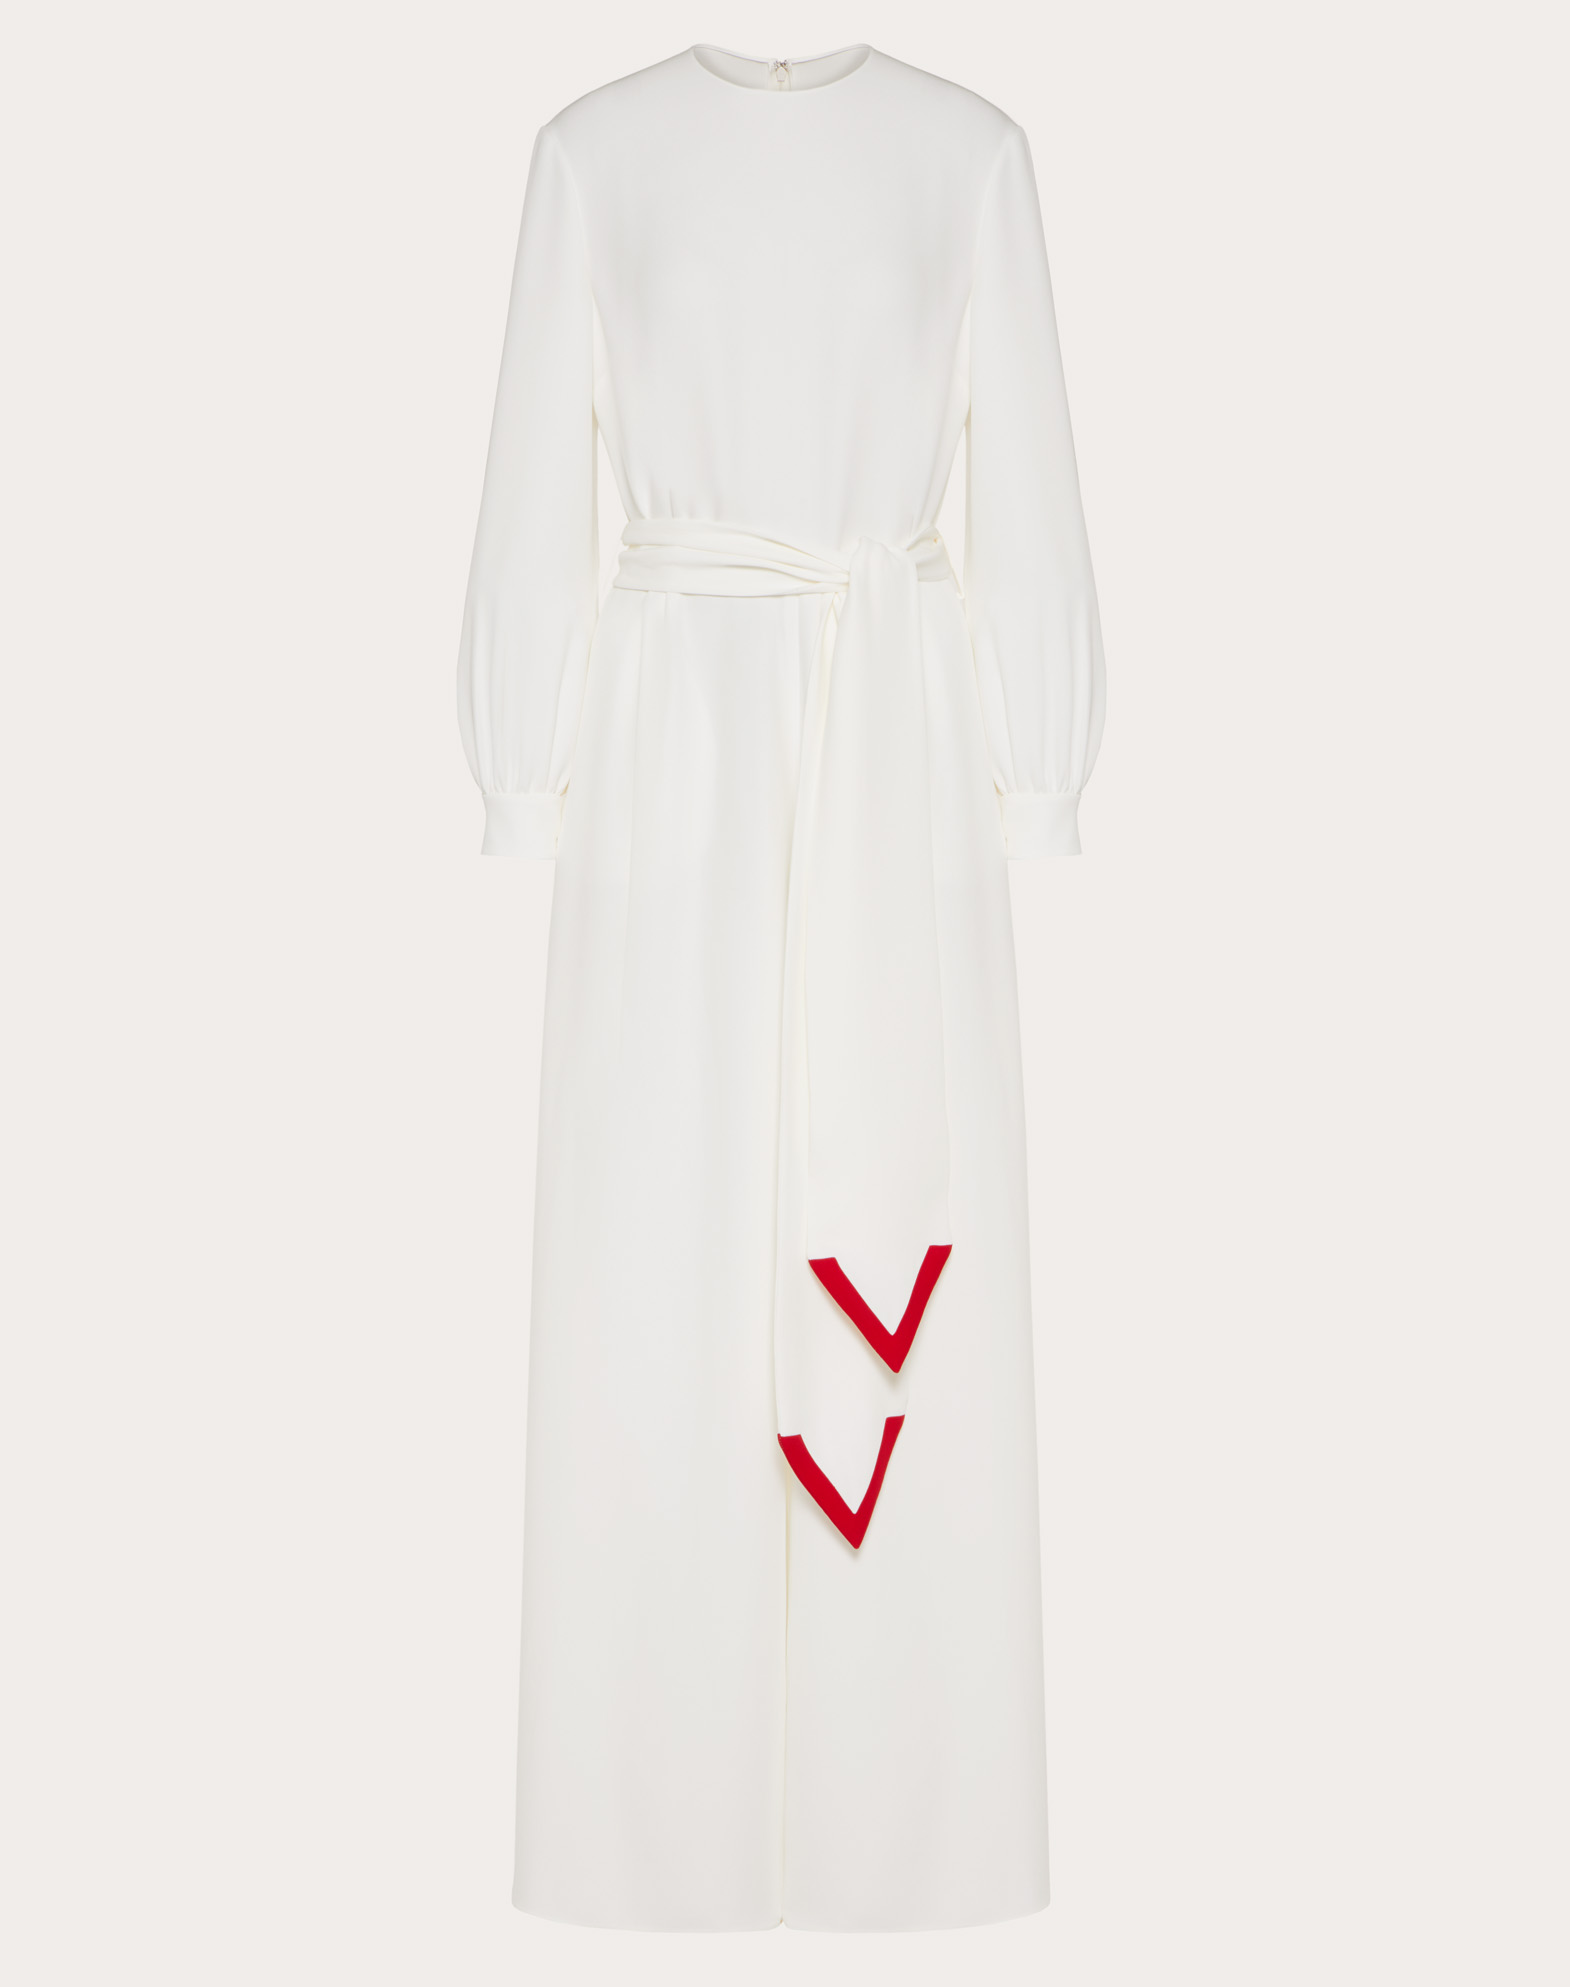 Cady Couture Jumpsuit with V Intarsia